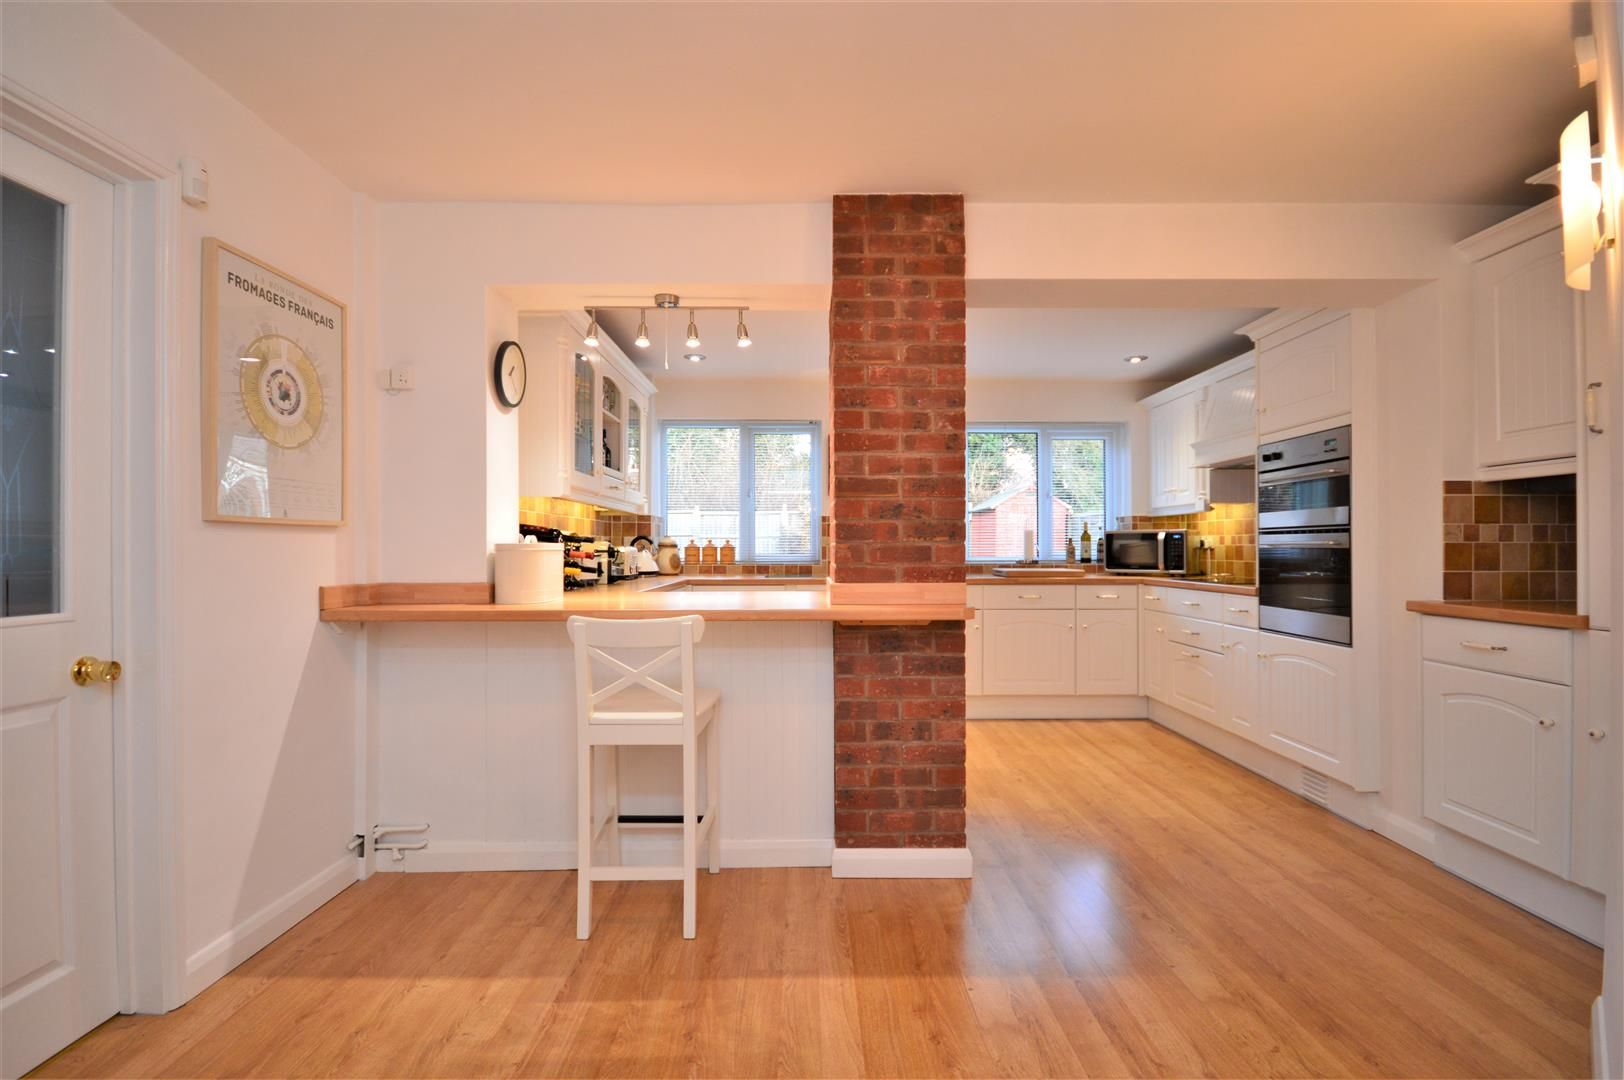 4 bed detached for sale in Hereford  - Property Image 3